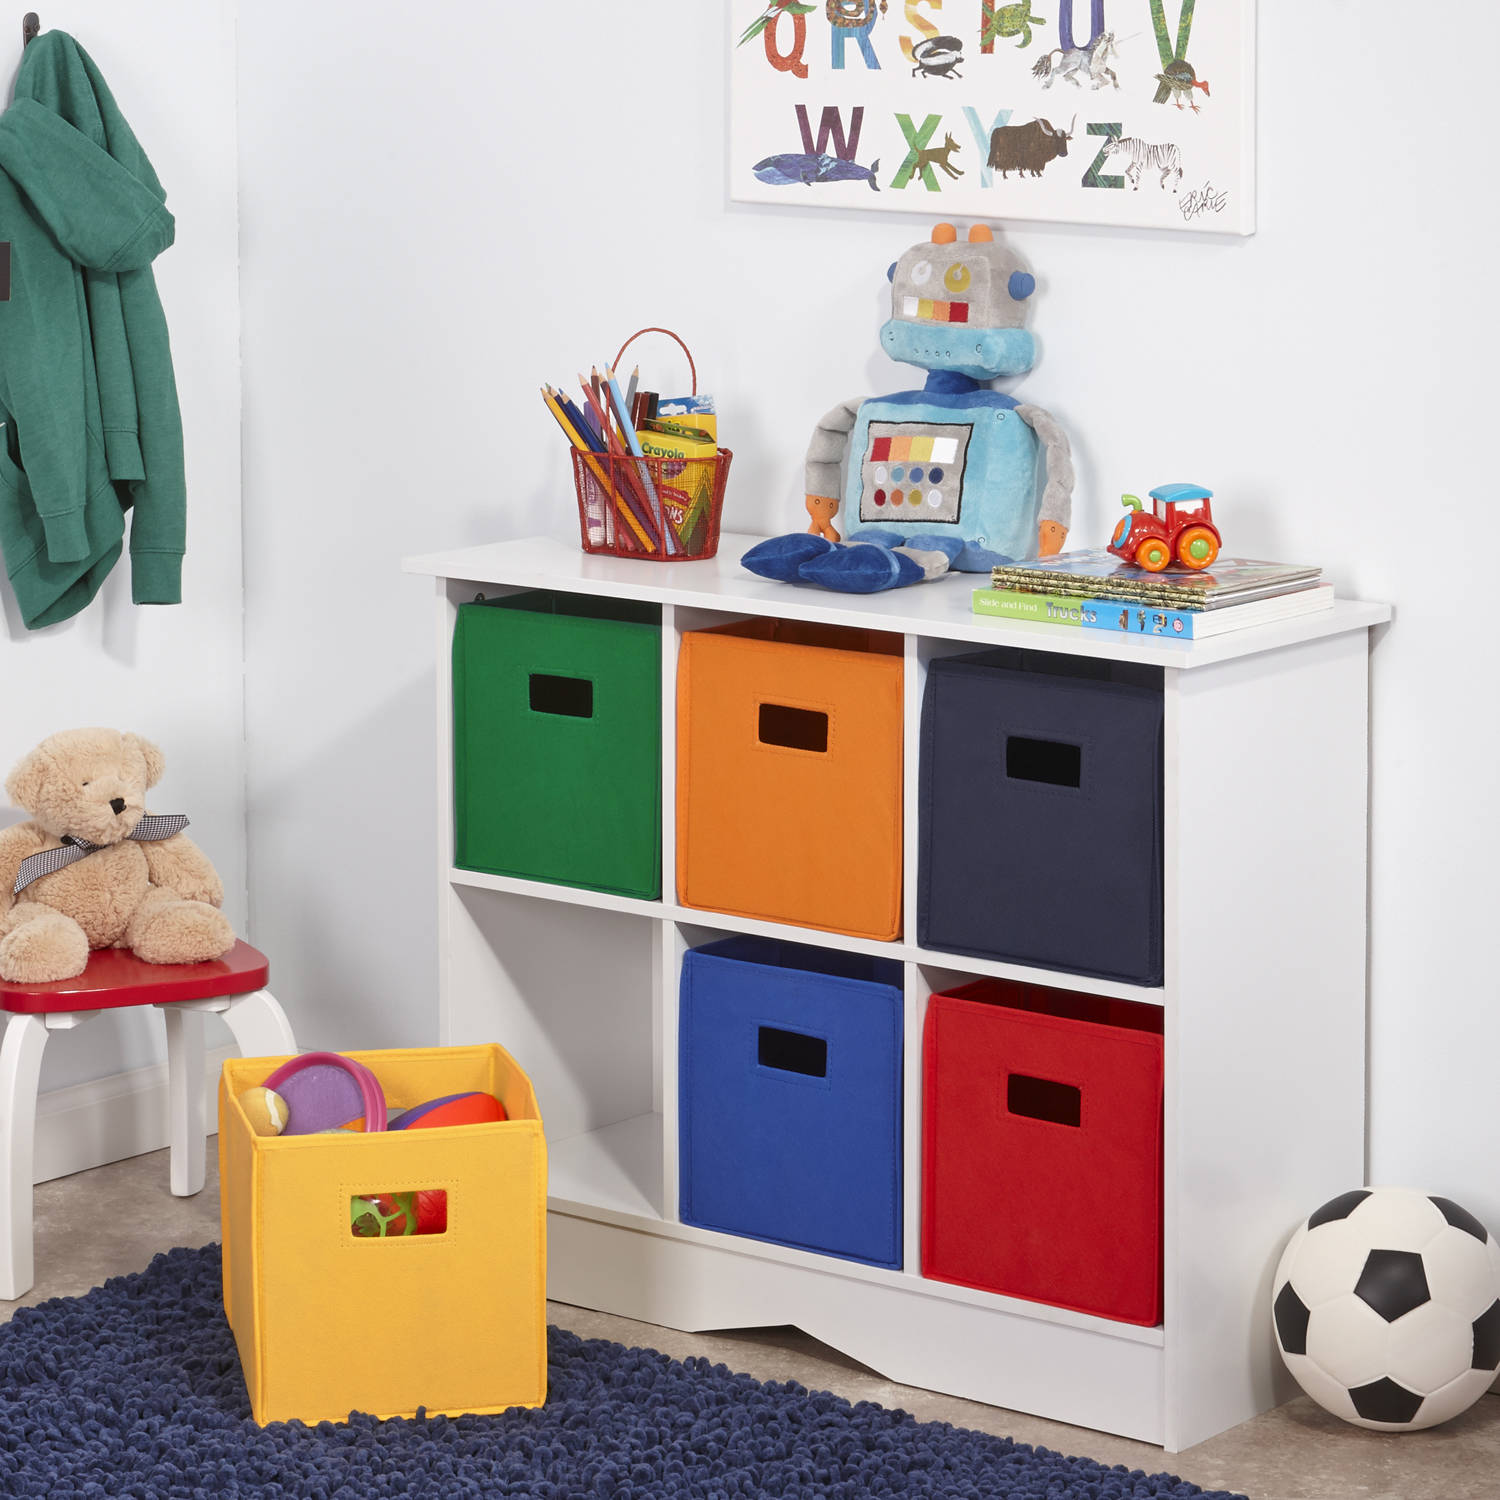 New Kids Playroom Nursery Storage Cabinet With 6 Bins White And Primary Tones